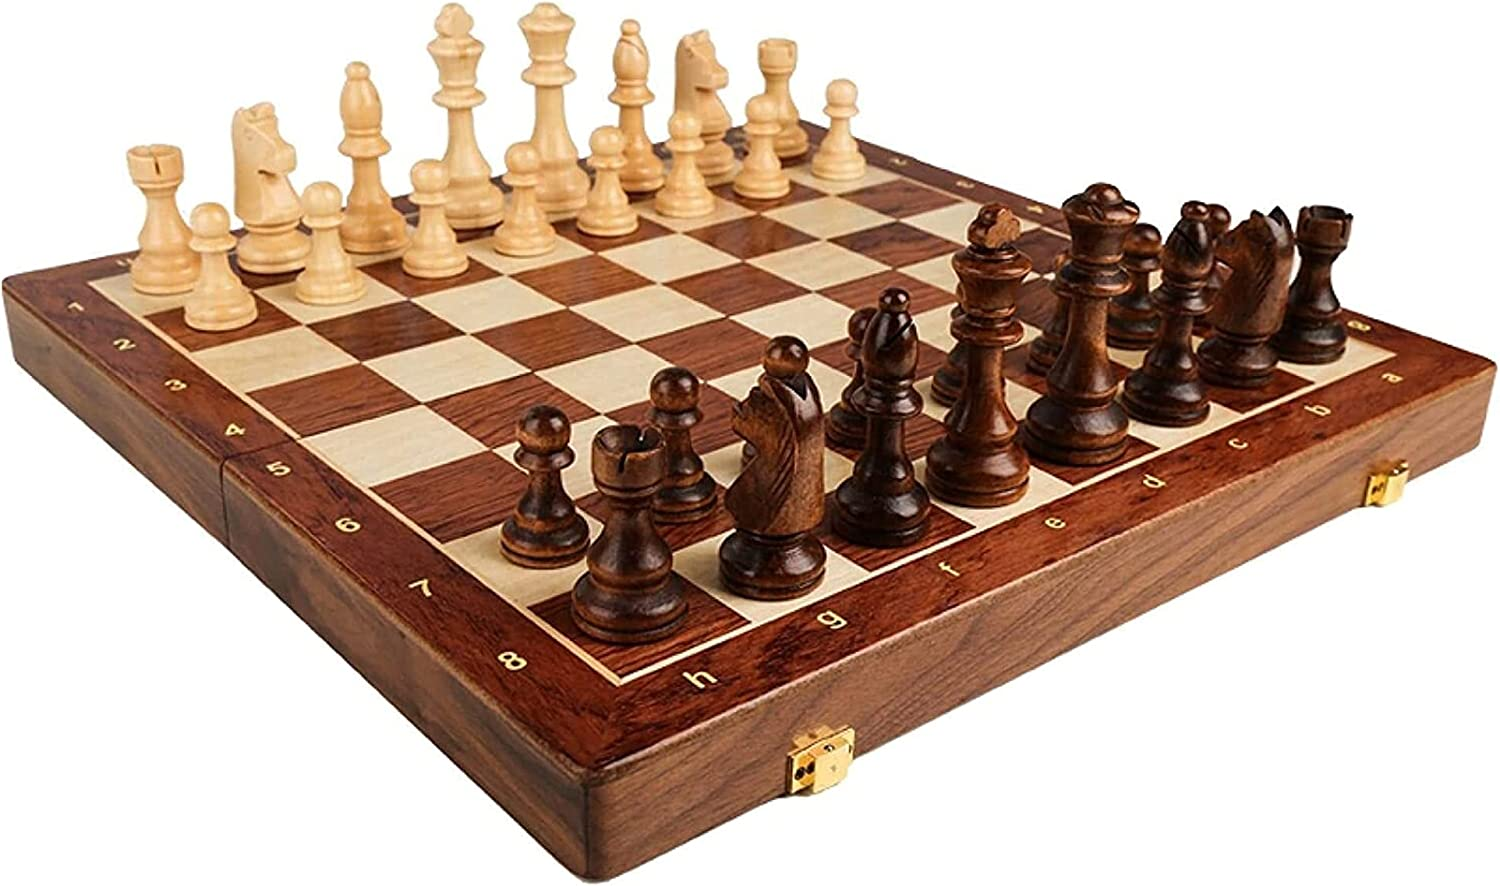 MTCWD Chess Set price Magnetic Hand Portable Super beauty product restock quality top Board